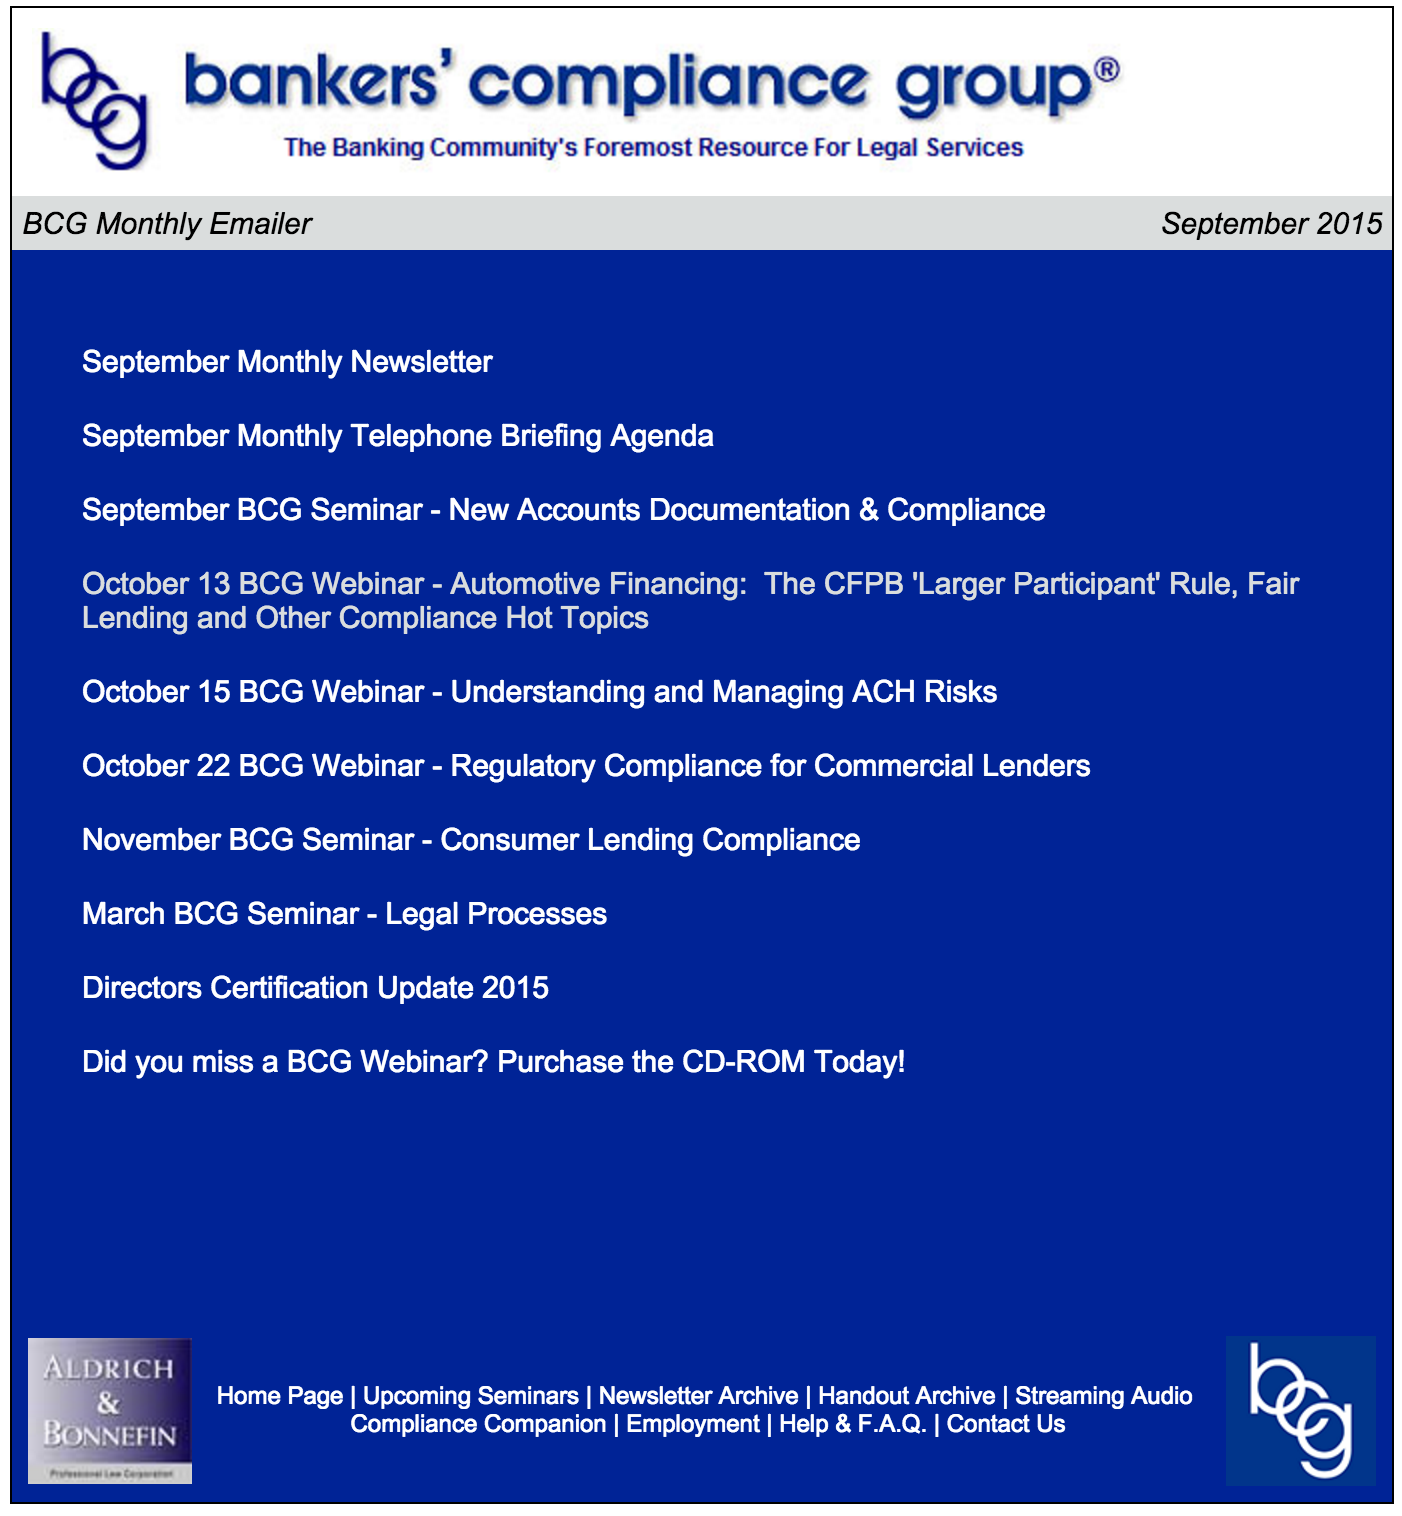 September 2015 Bankers Compliance Group Monthly Mailer